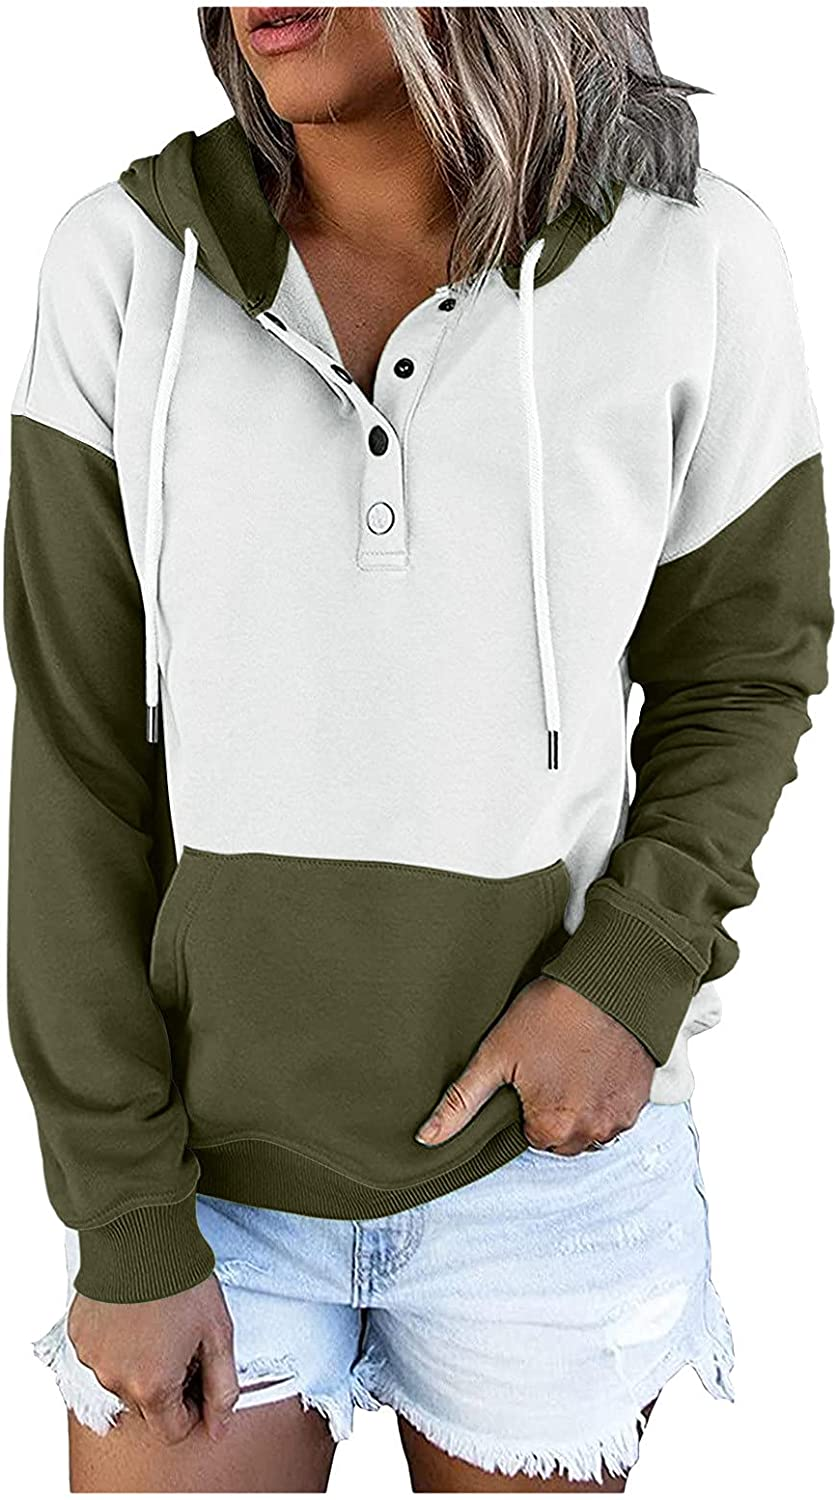 Hoodies for Women,Womens Casual Hoodies Button Down Hooded Pullover Sweatshirts Long Sleeve Pocket Drawstring Tops